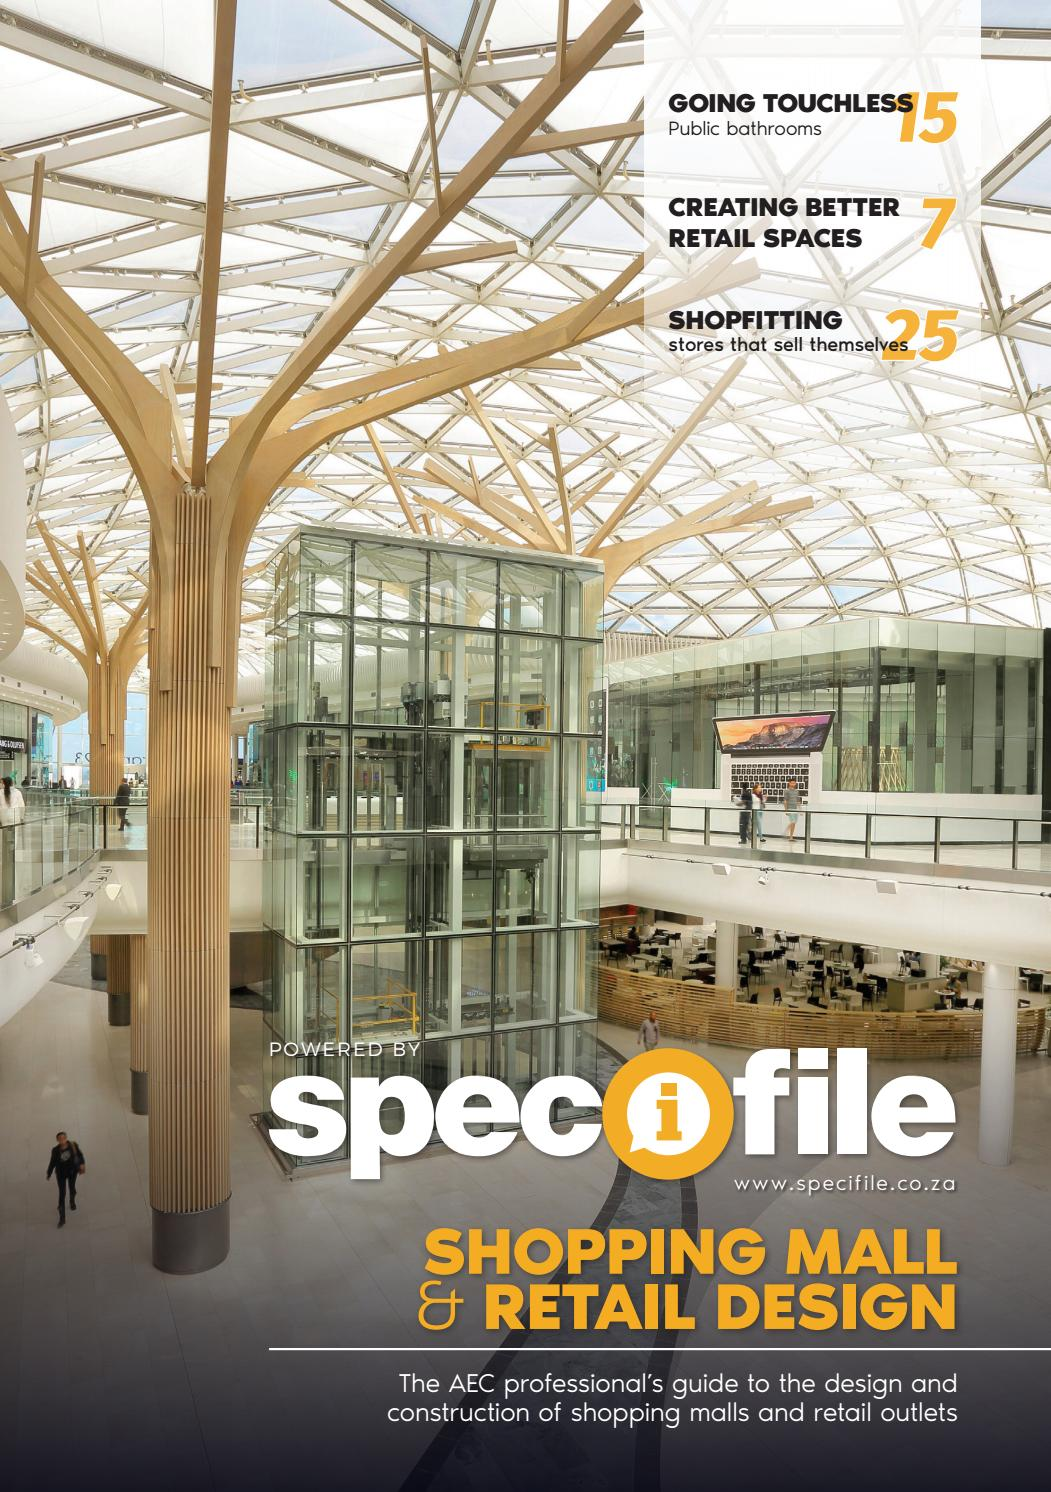 Shopping Mall & Retail Design Powered by Specifile by New Media B2B